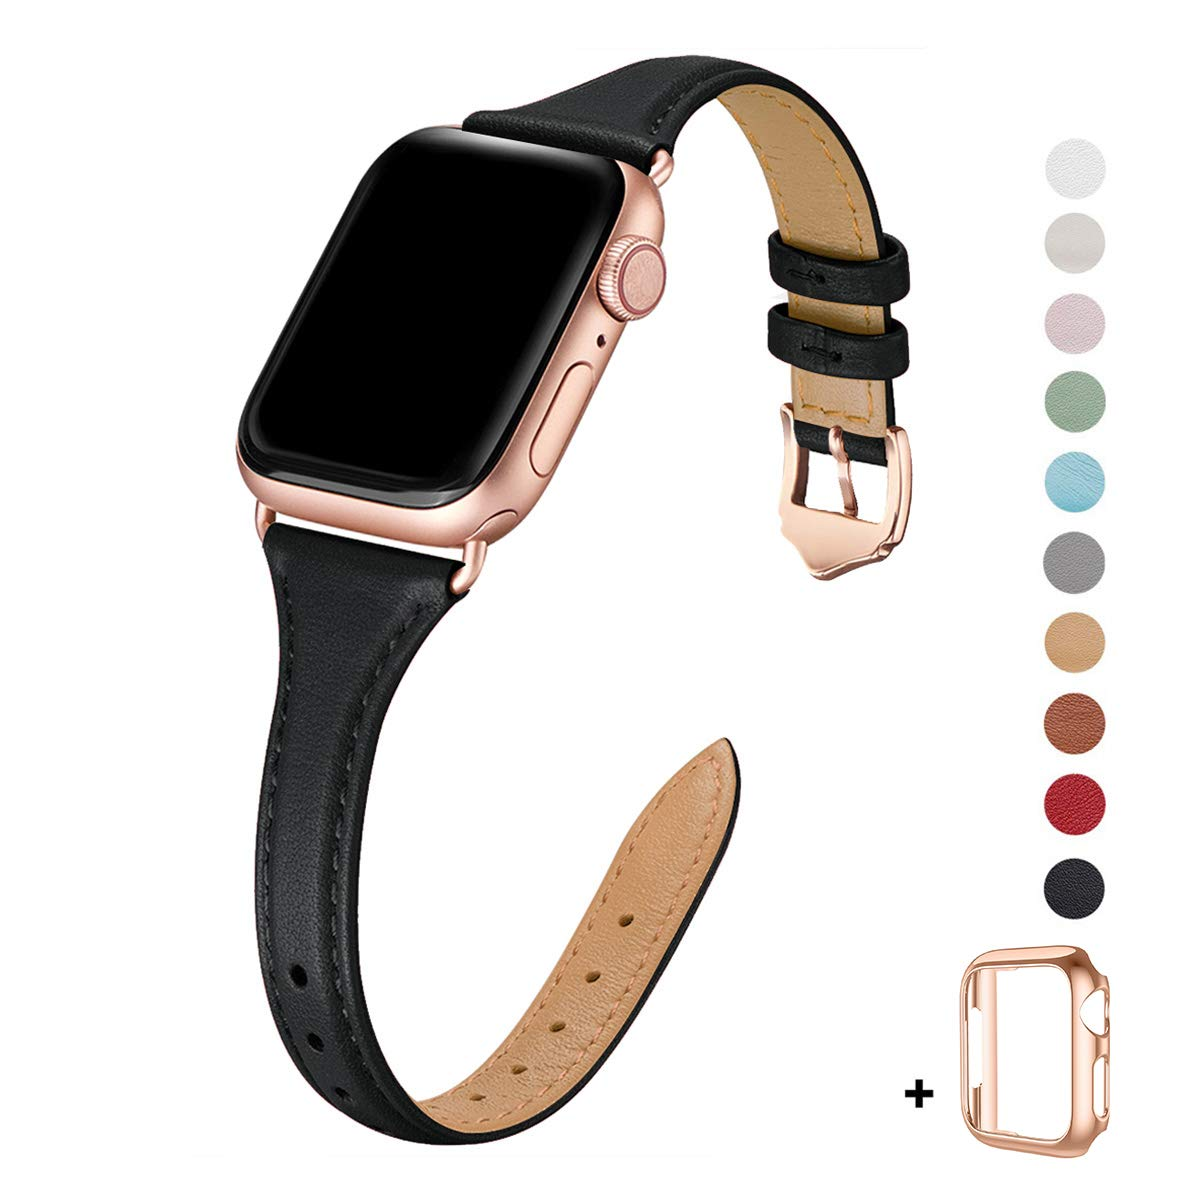 WFEAGL Leather Bands Compatible with Apple Watch 38mm 40mm 42mm 44mm, Top Grain Leather Band Slim & Thin Replacement Wristband for iWatch Series 4/3/2/1 (Black Band+Rose Gold Adapter, 38mm 40mm) by WFEAGL